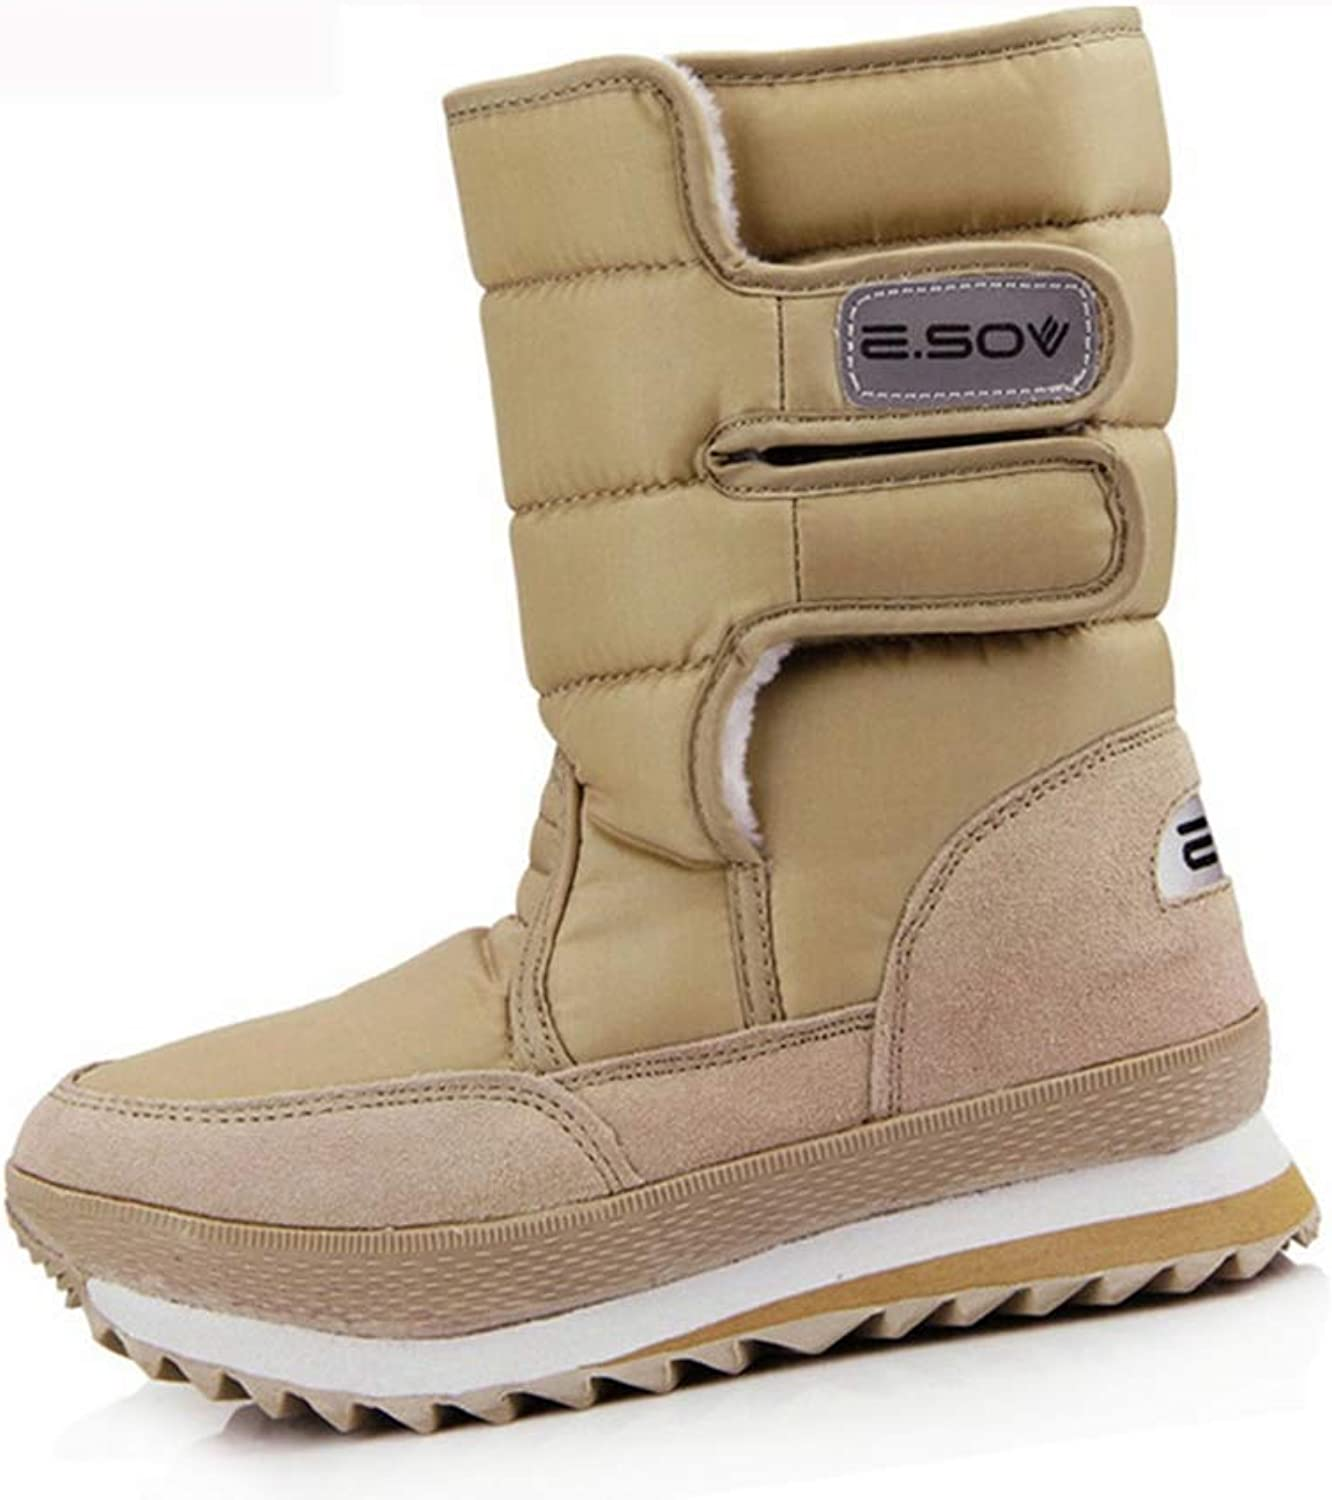 Woman Snow Boots Non-Slip Sole Low Heel Hook & Loop Waterproof Plush Winter Warm Female Mid Calf Boot Multicolor